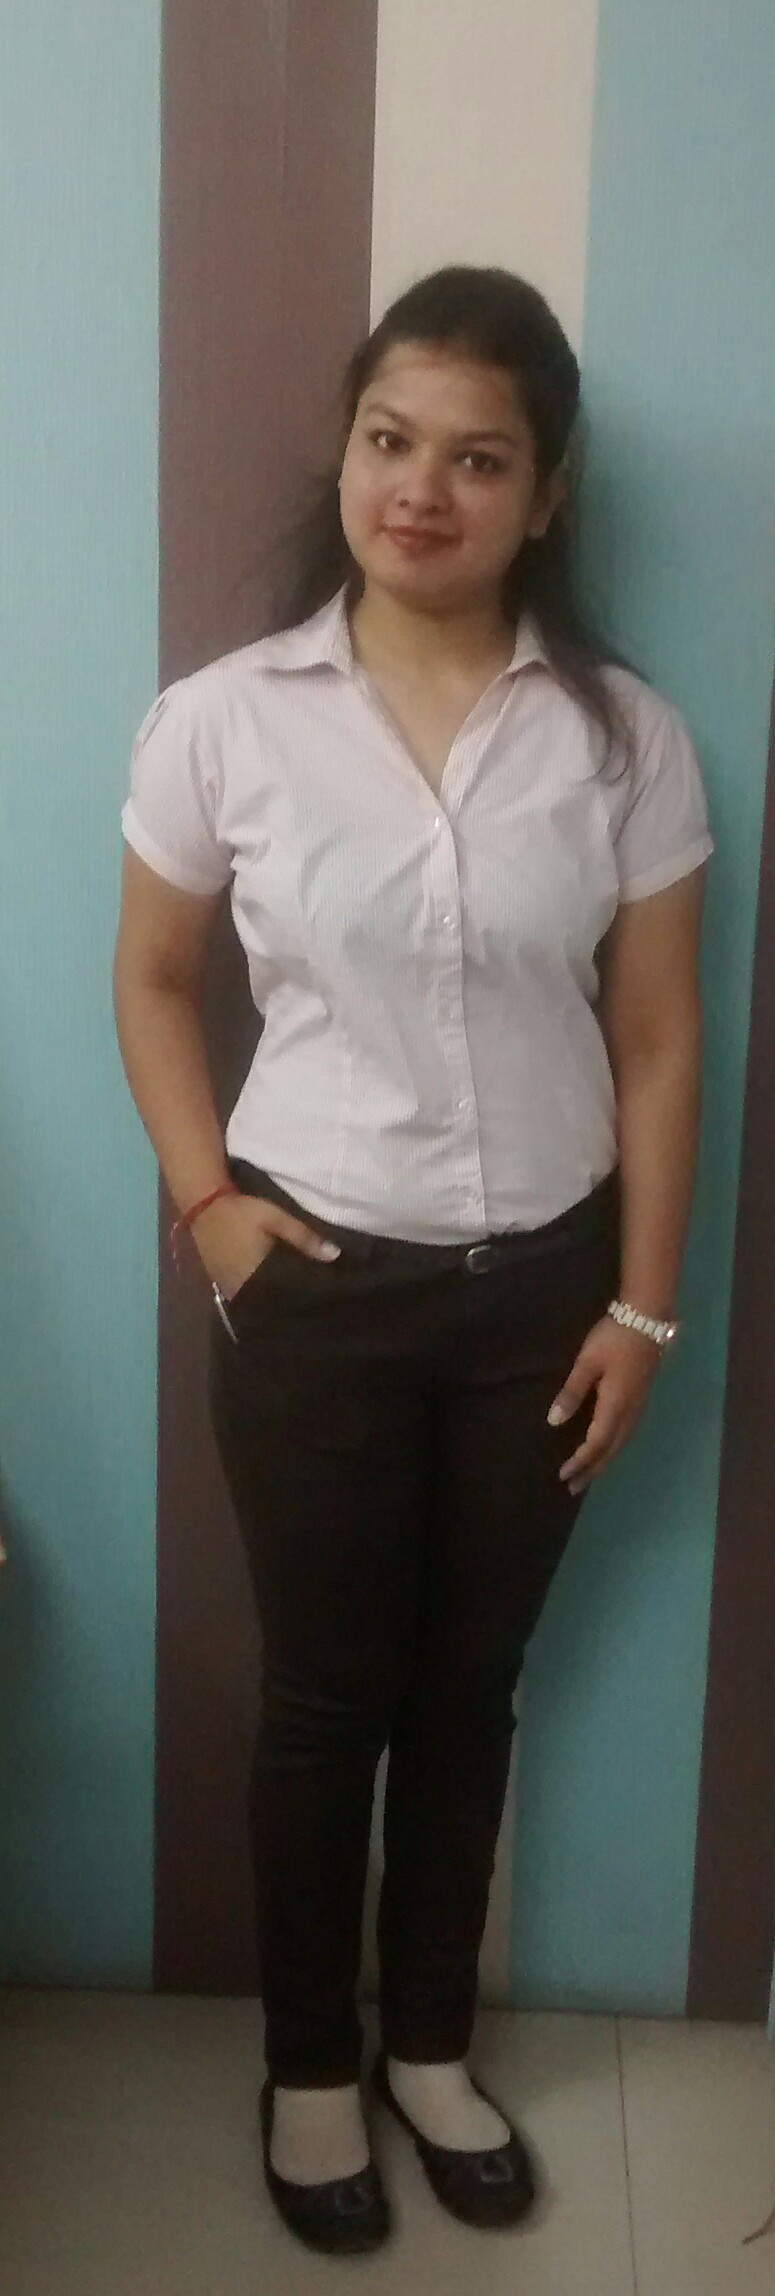 Best chartered accountant firms in bangalore dating 3